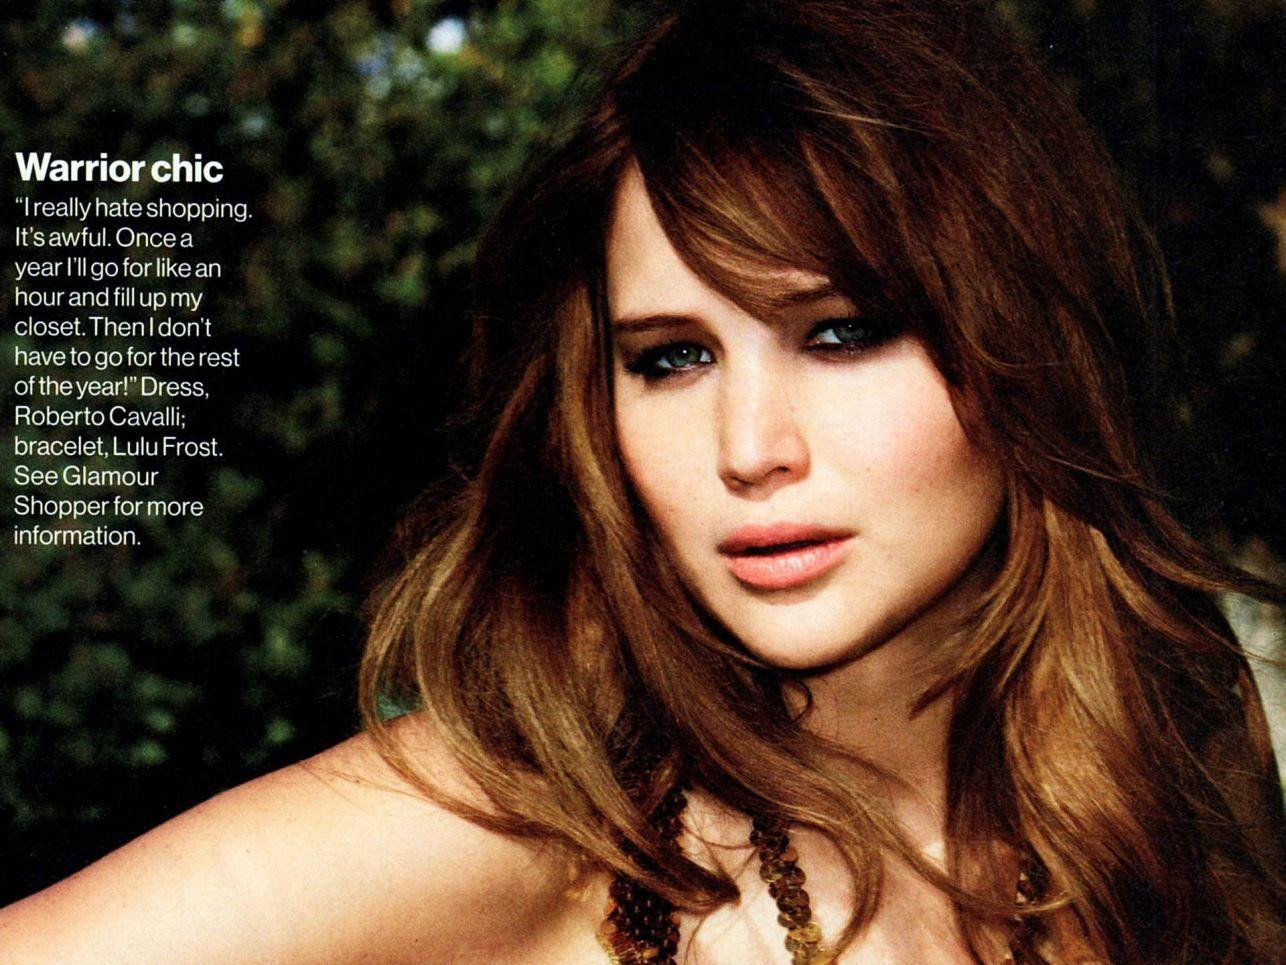 Jennifer Lawrence Wallpaper #21 - Apnatimepass.com